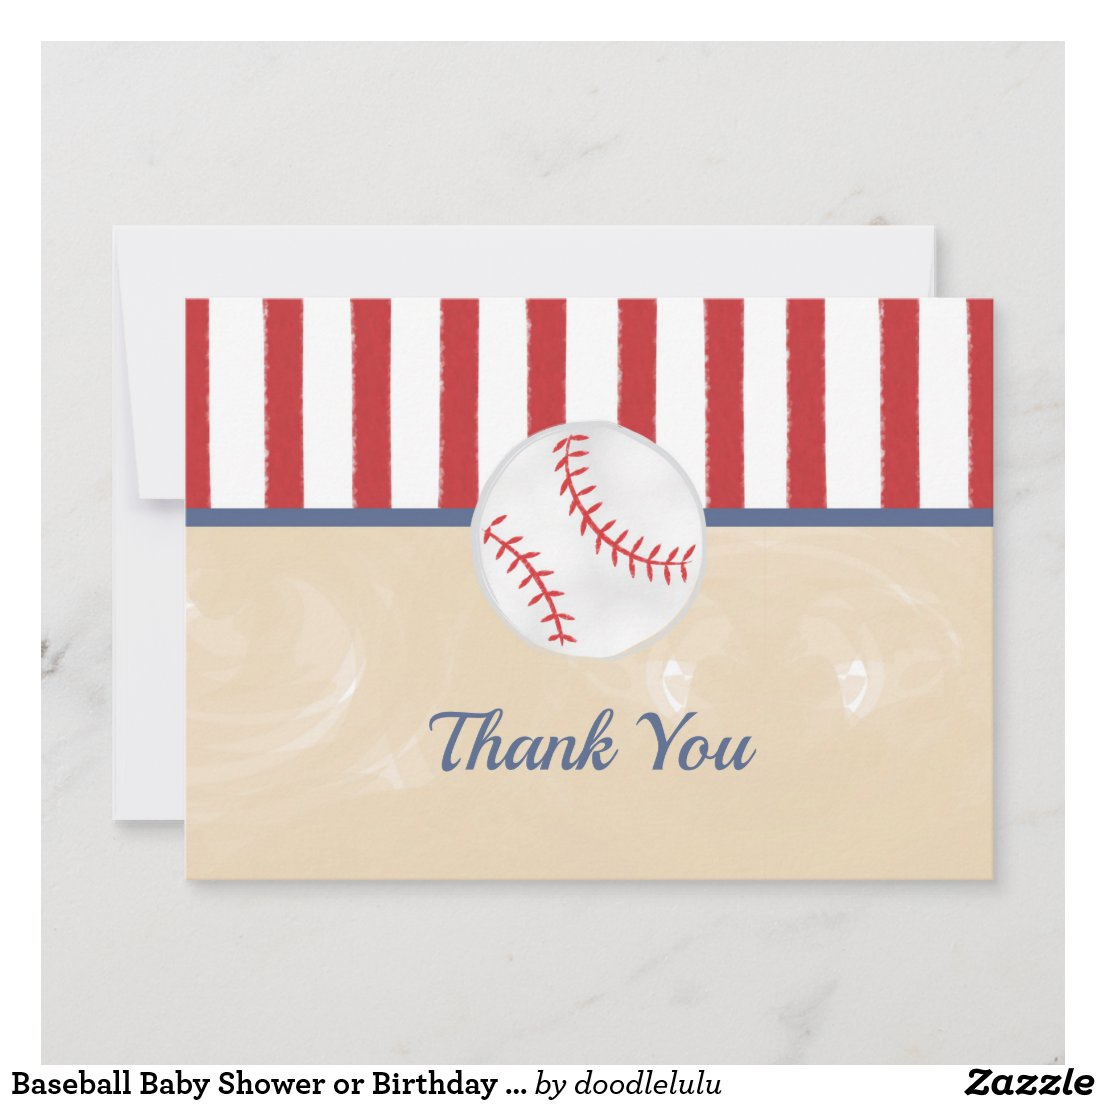 Baseball Baby Shower or Birthday Thank You Card